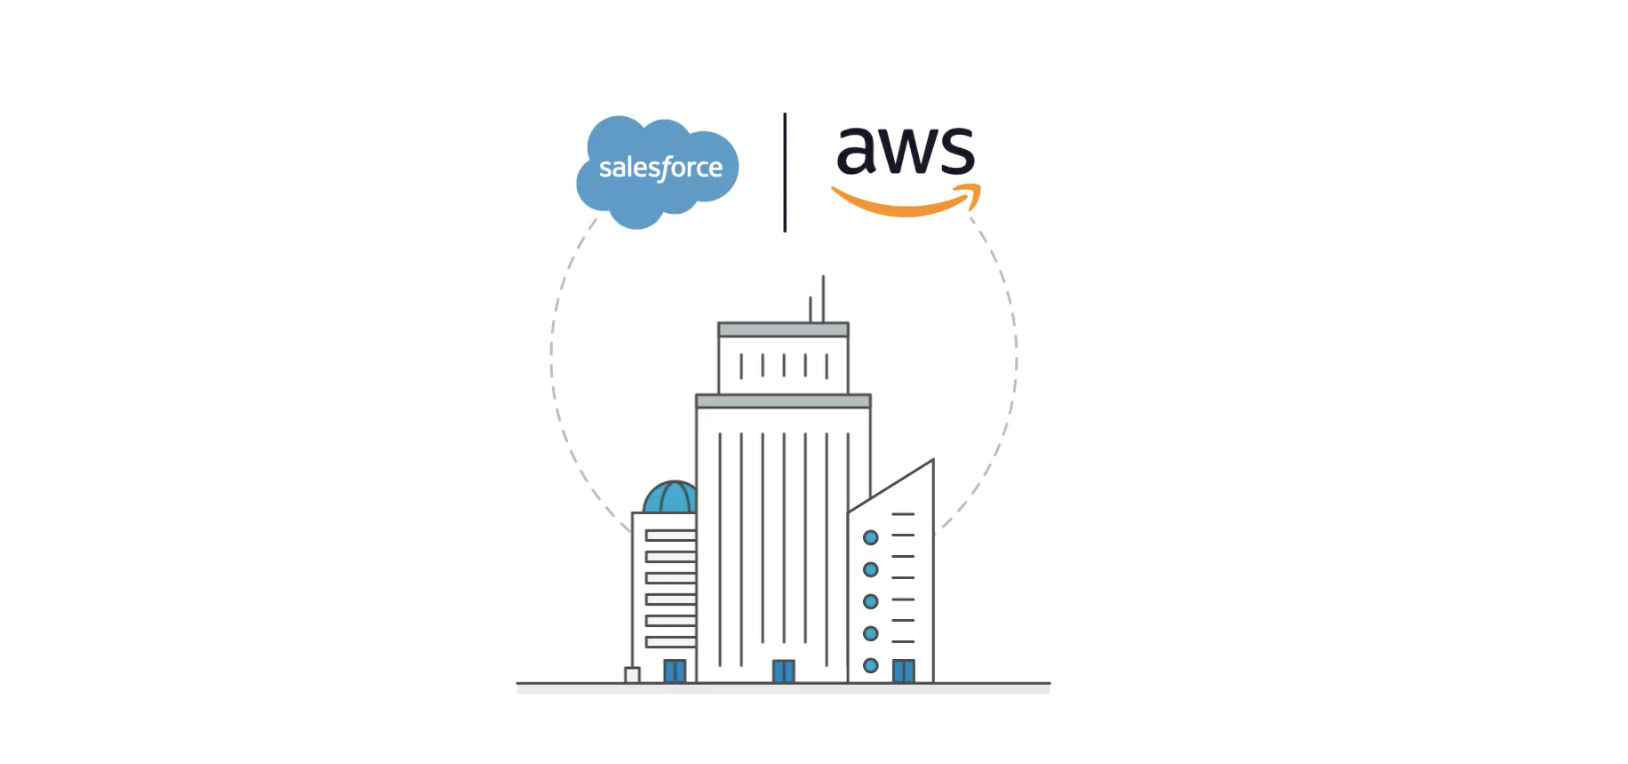 Salesforce-AWS Video Image 1.png